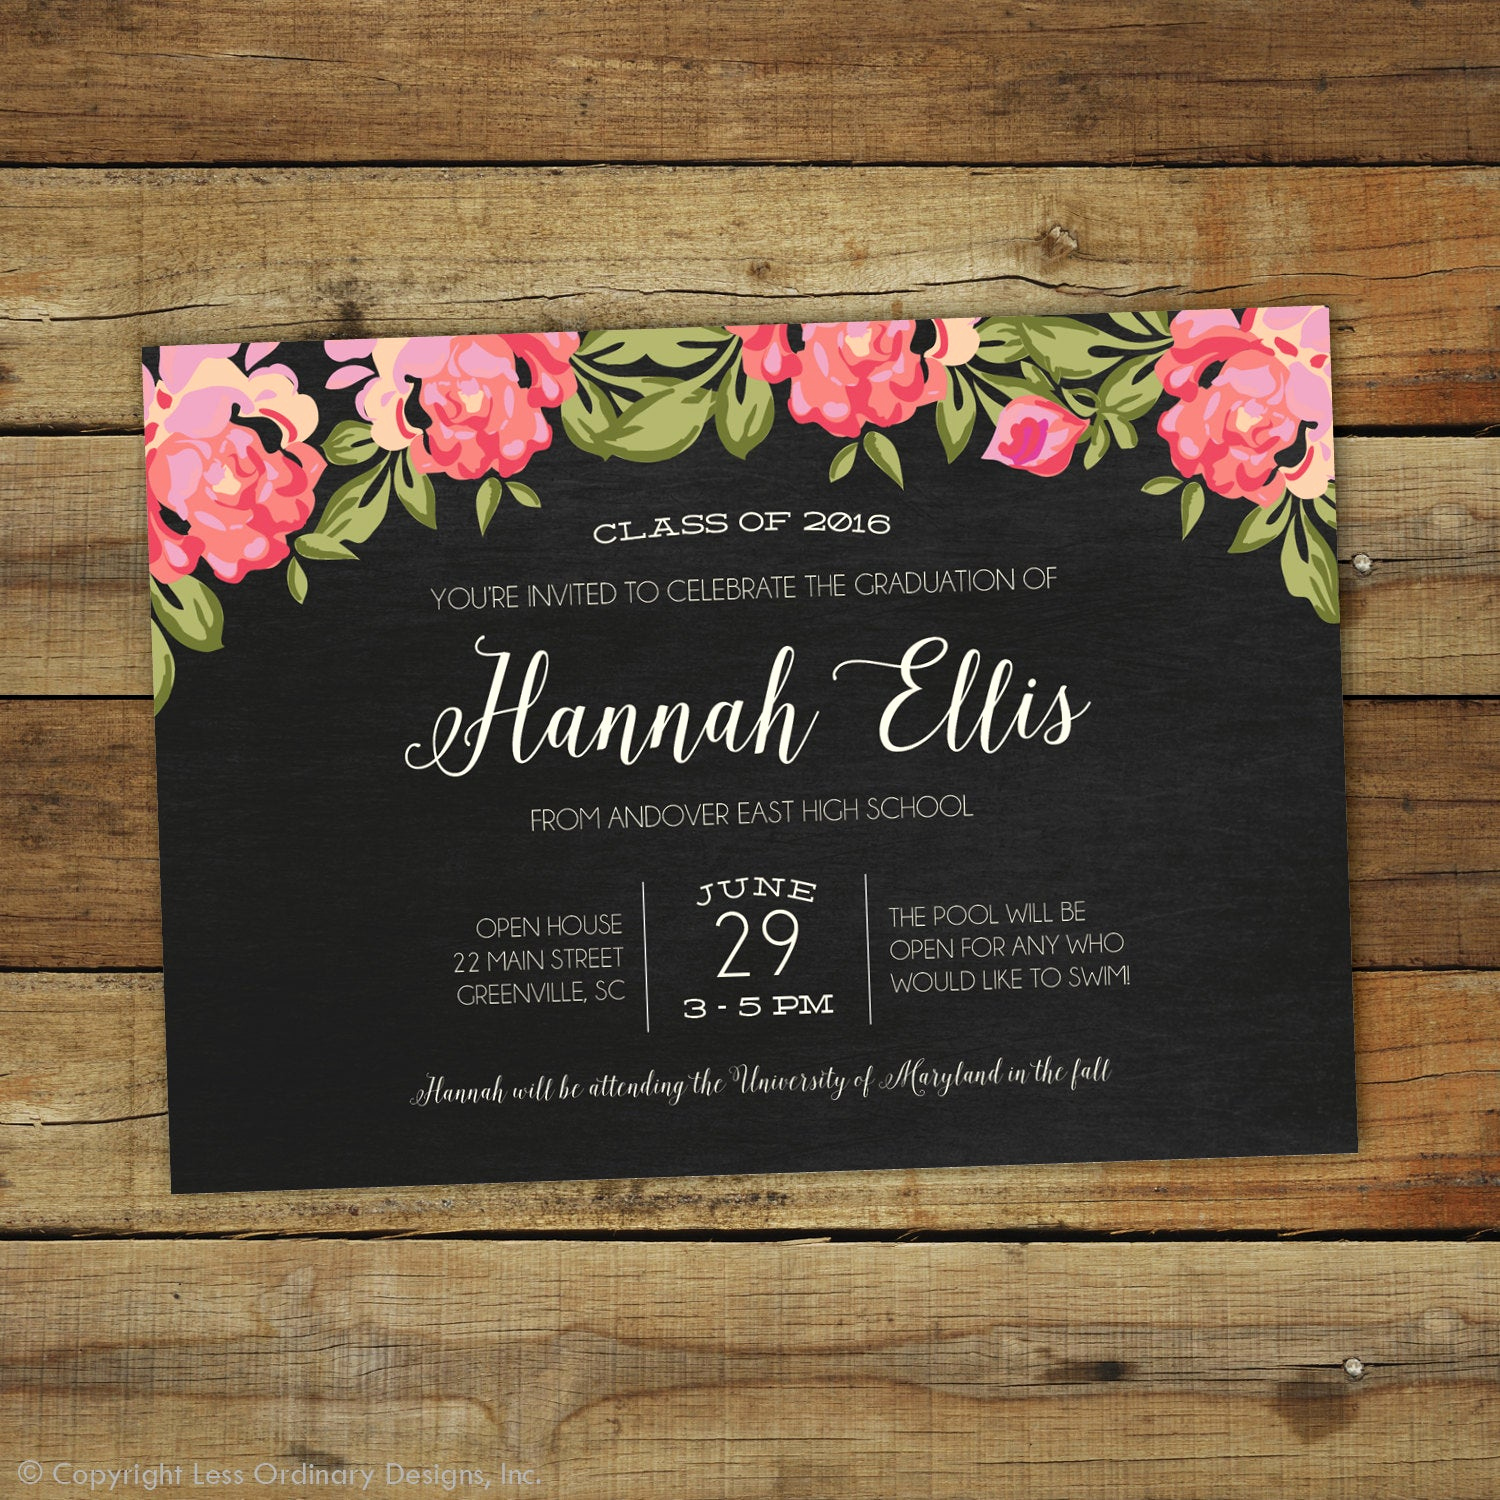 School Open House Invitation Template Unique 2017 Graduation Party Invitation Floral Graduation Open House